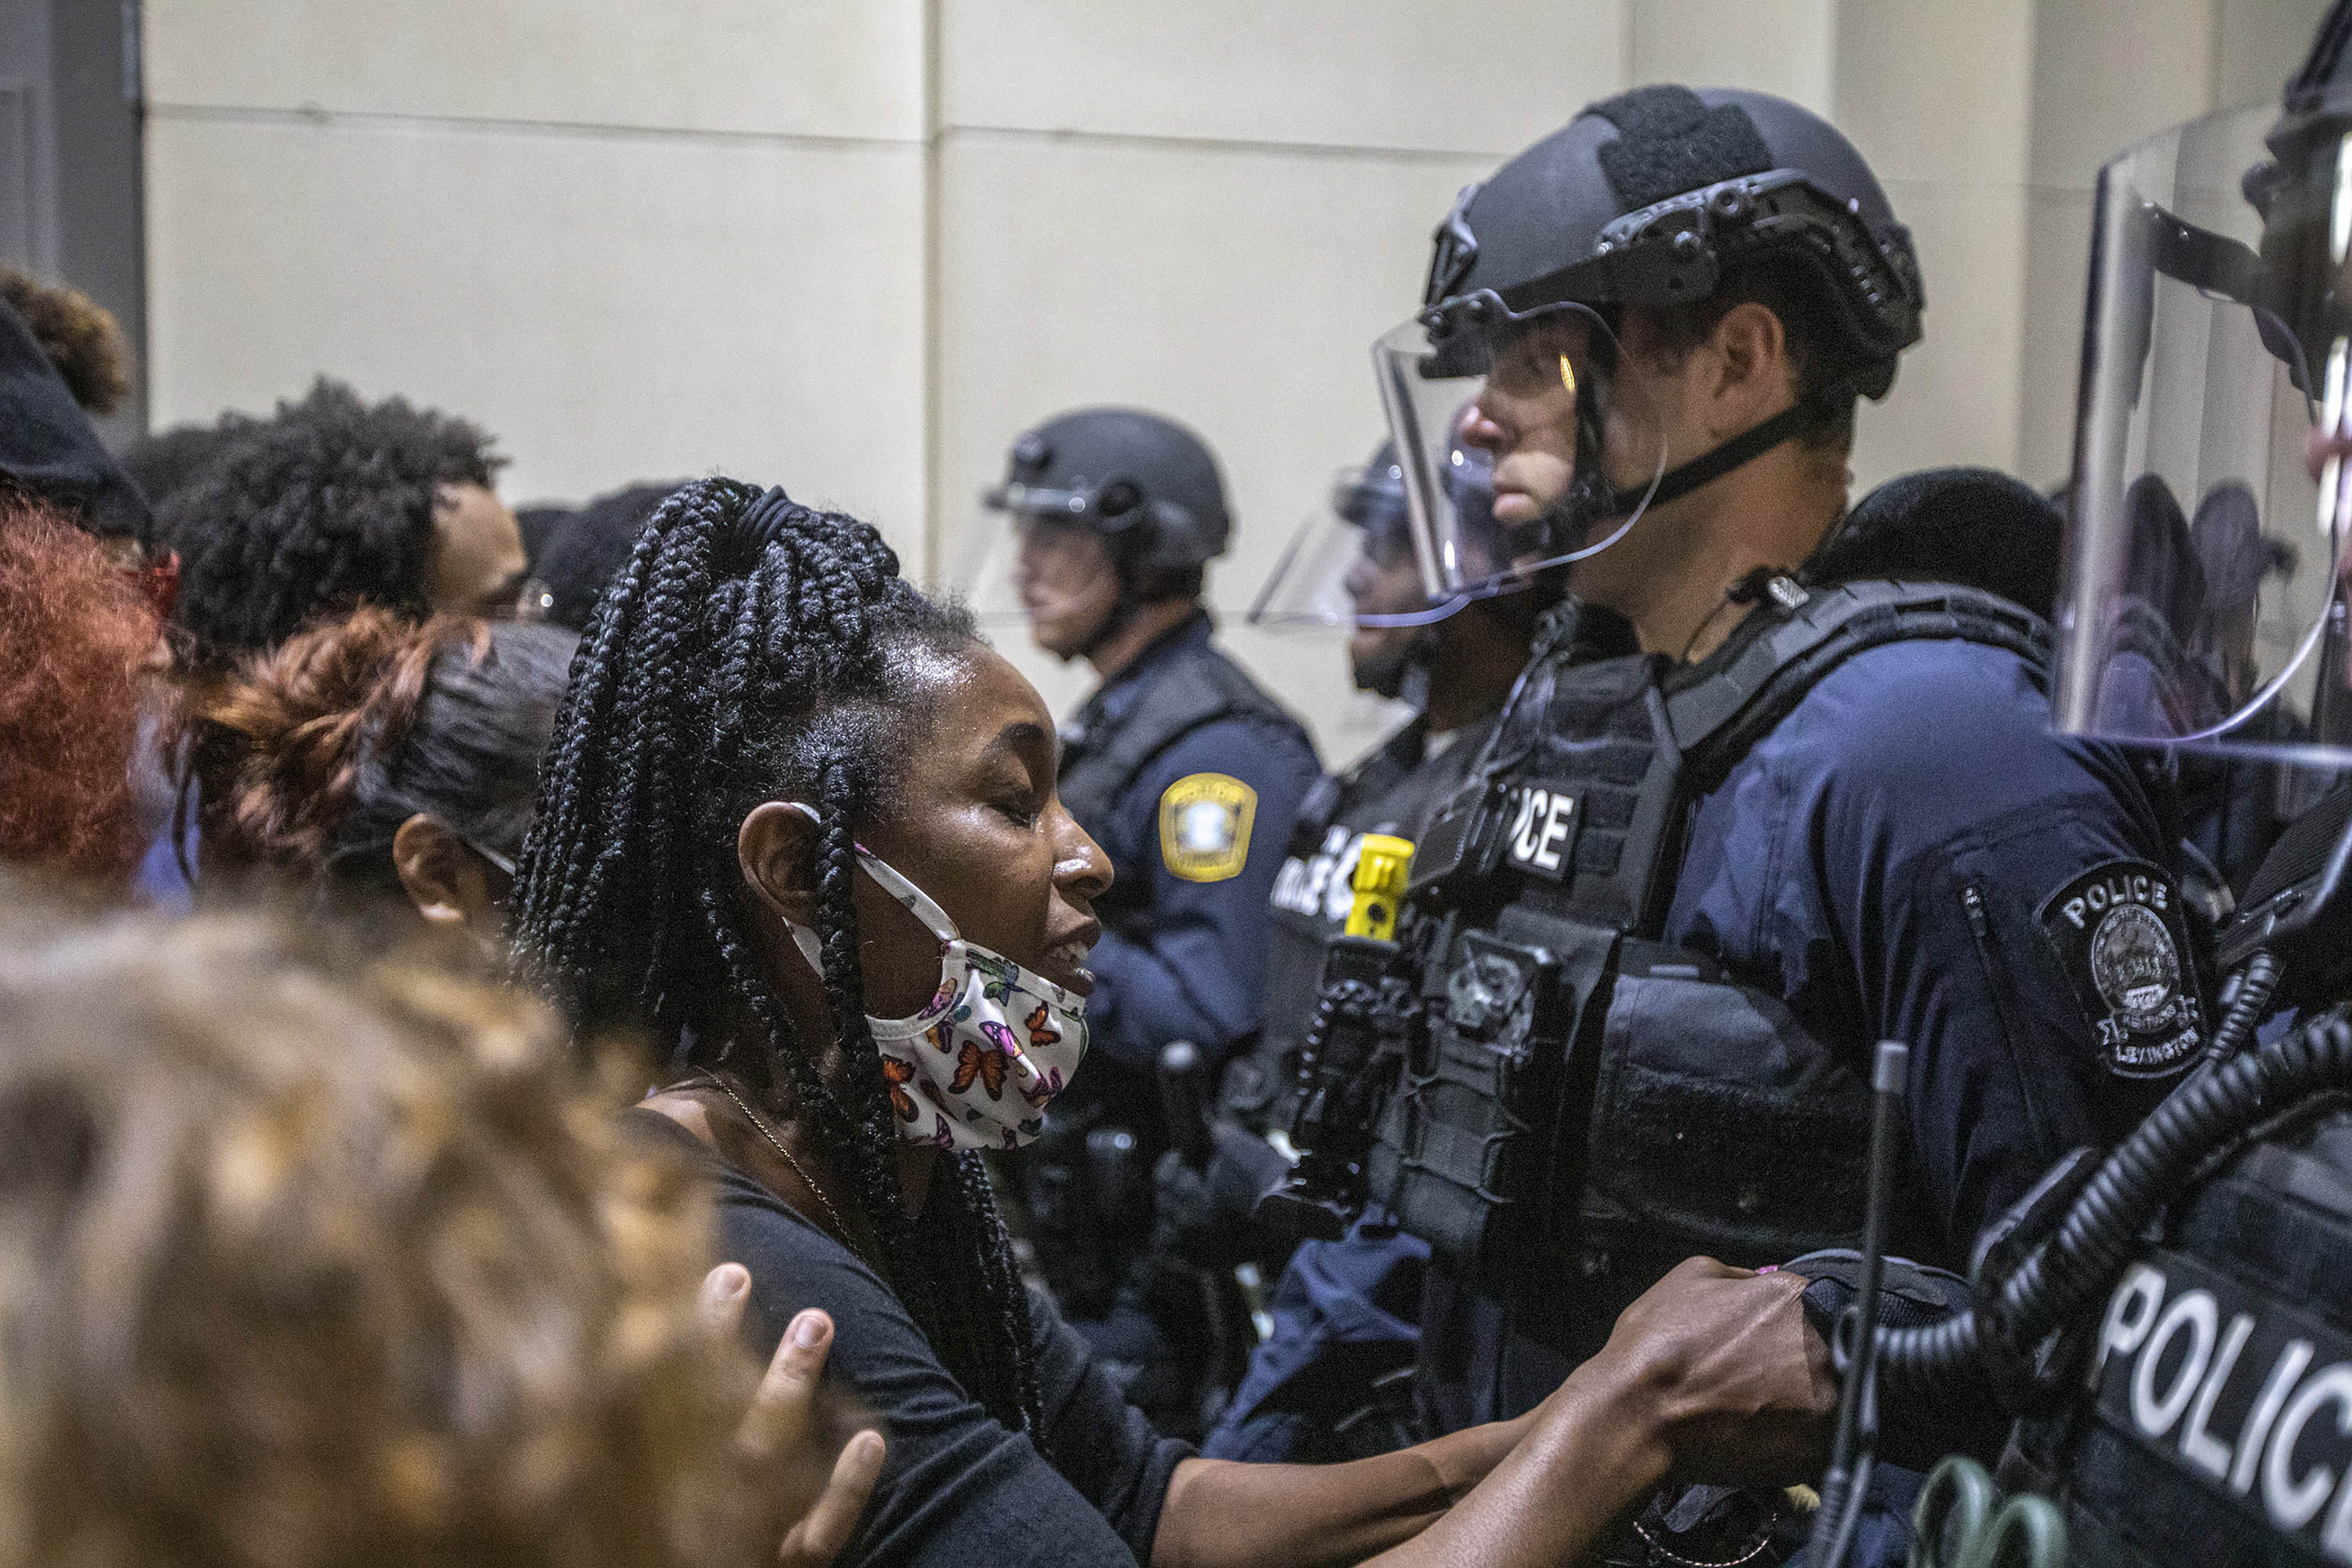 A protester holds a police officer's hand while praying together during a rally to protest the deaths of George Floyd and Breonna Taylor in Lexington, Kentucky, on Sunday, May 31.